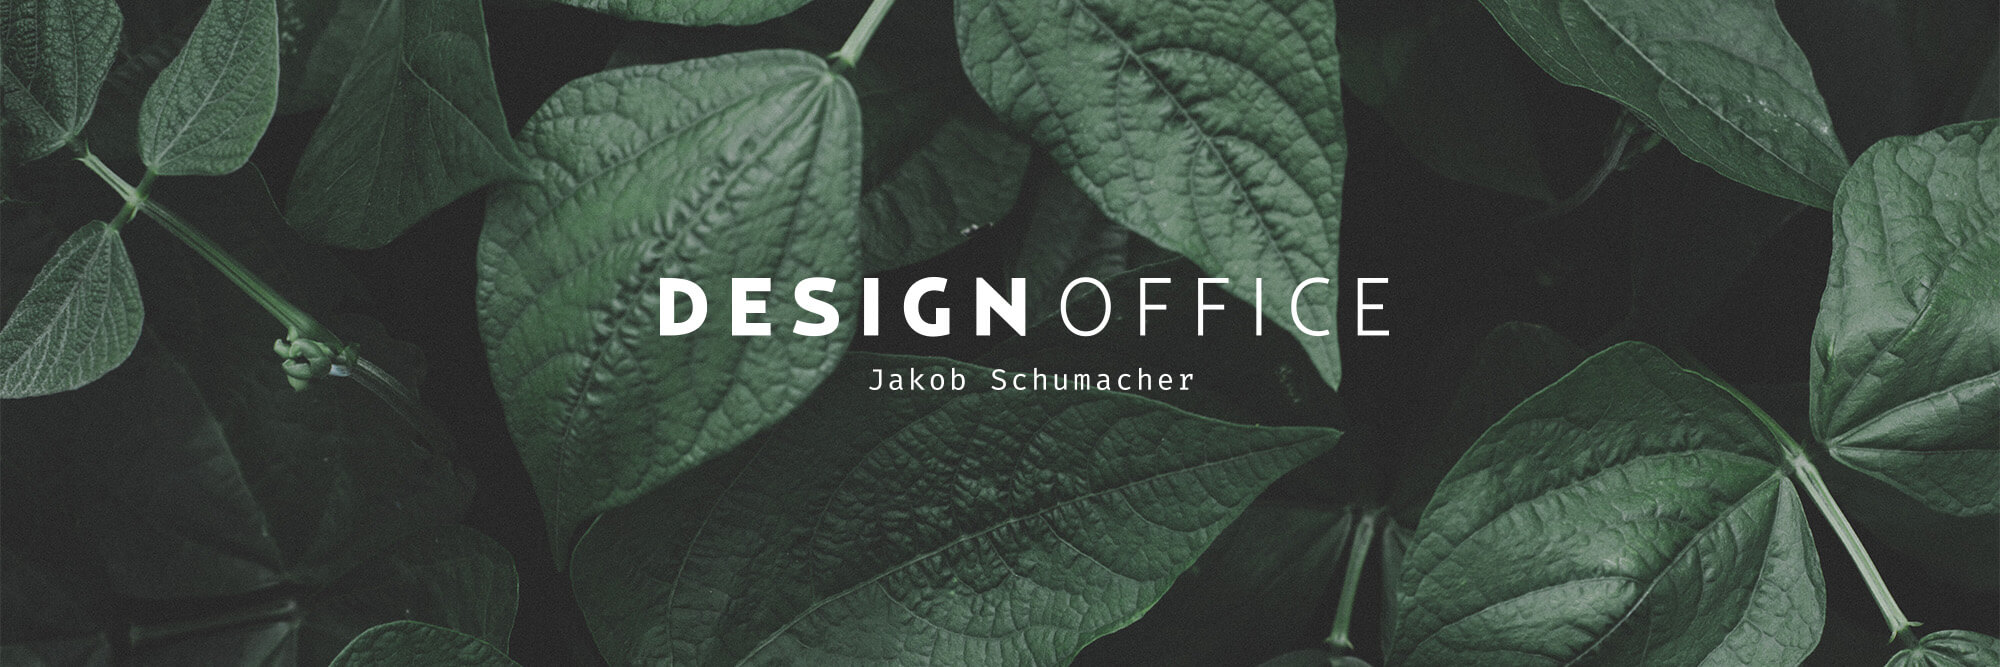 jakob-schumacher_freelancer_grafikdesign.jpg